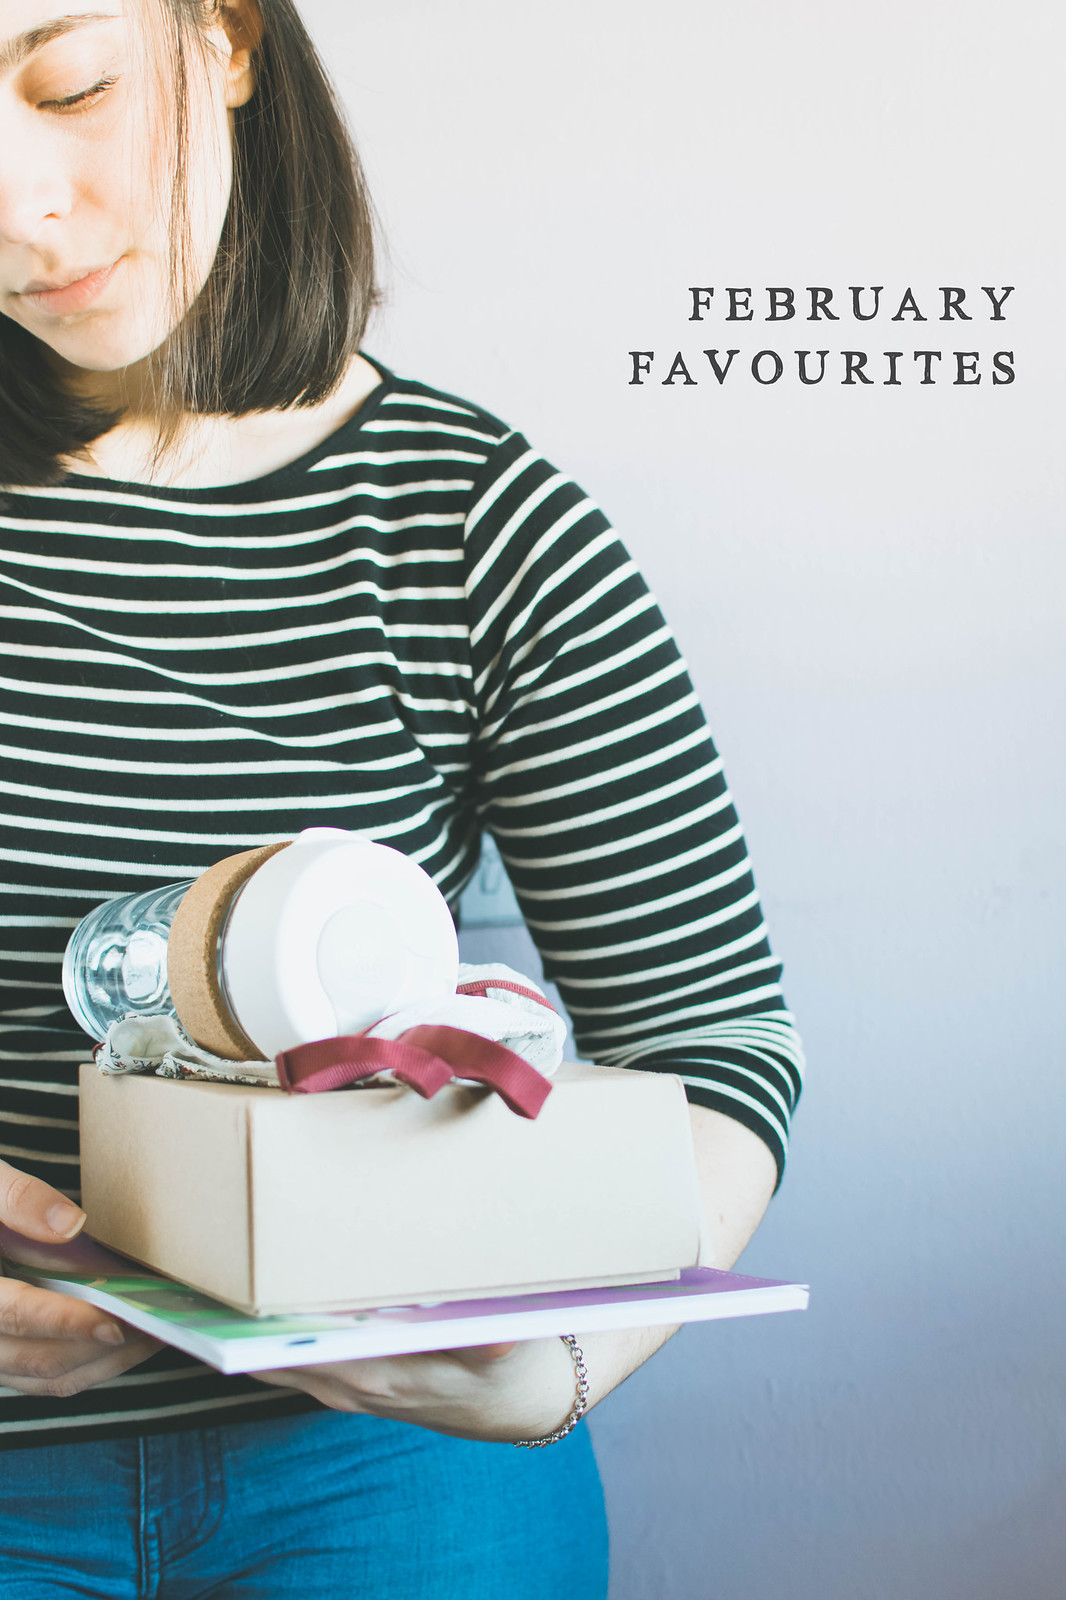 A roundup of my February favourites including selfcare, books and magazines and coffee!